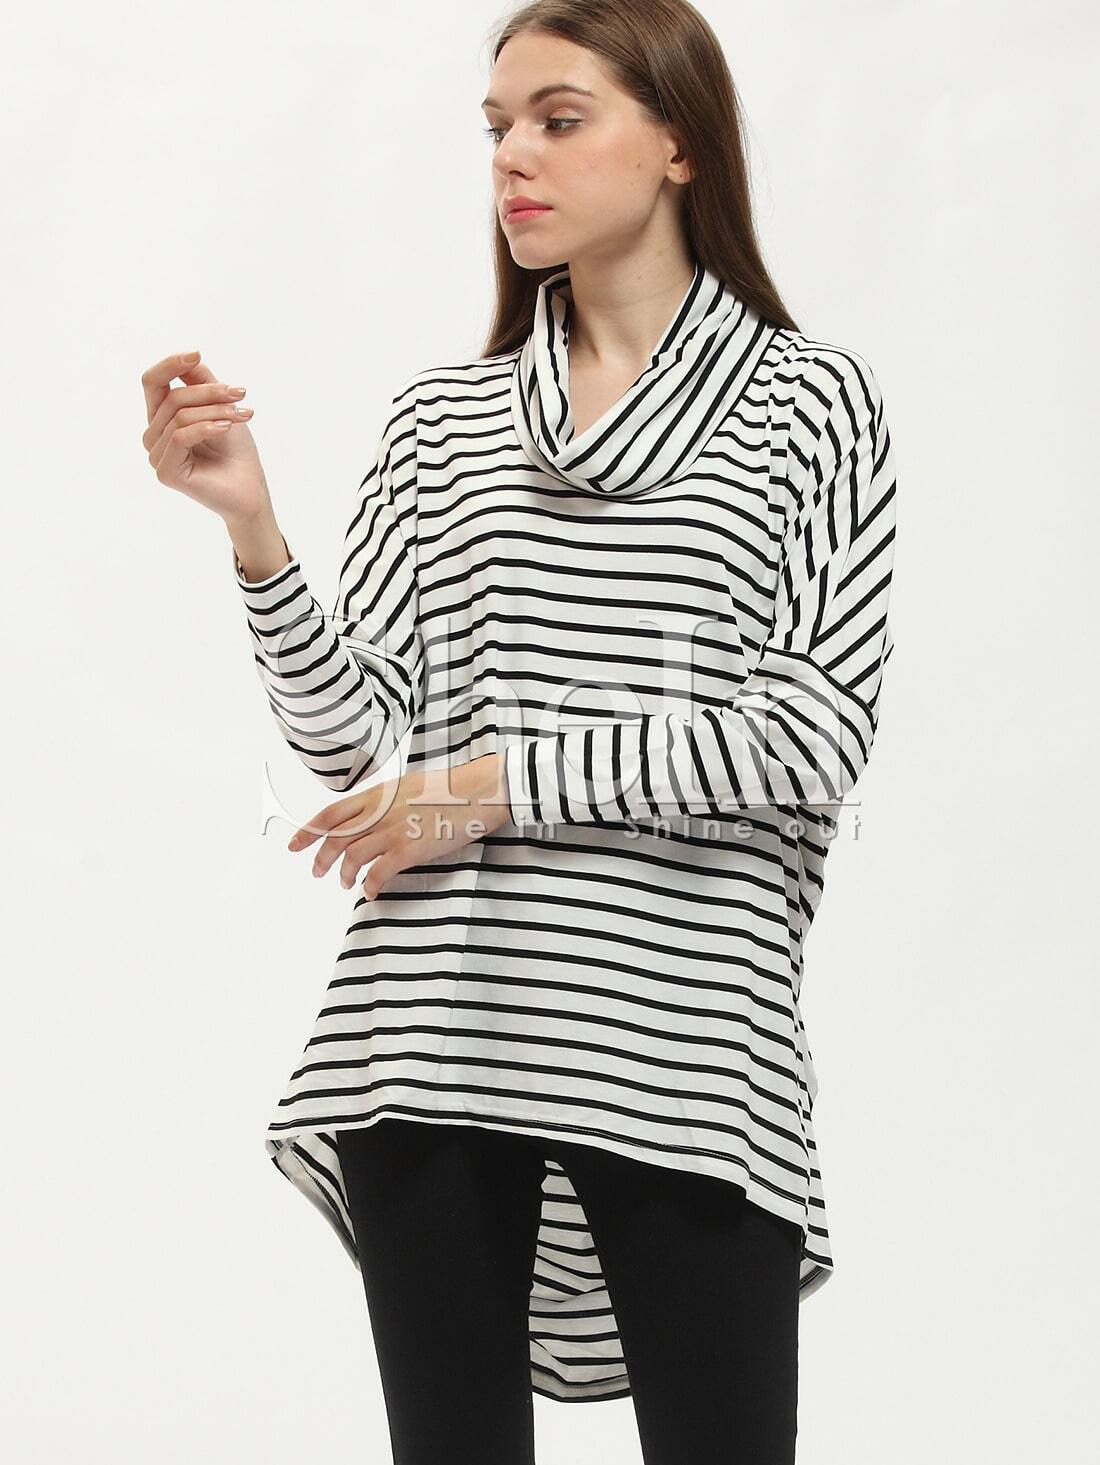 Black white high neck striped t shirt shein sheinside for High neck tee shirts